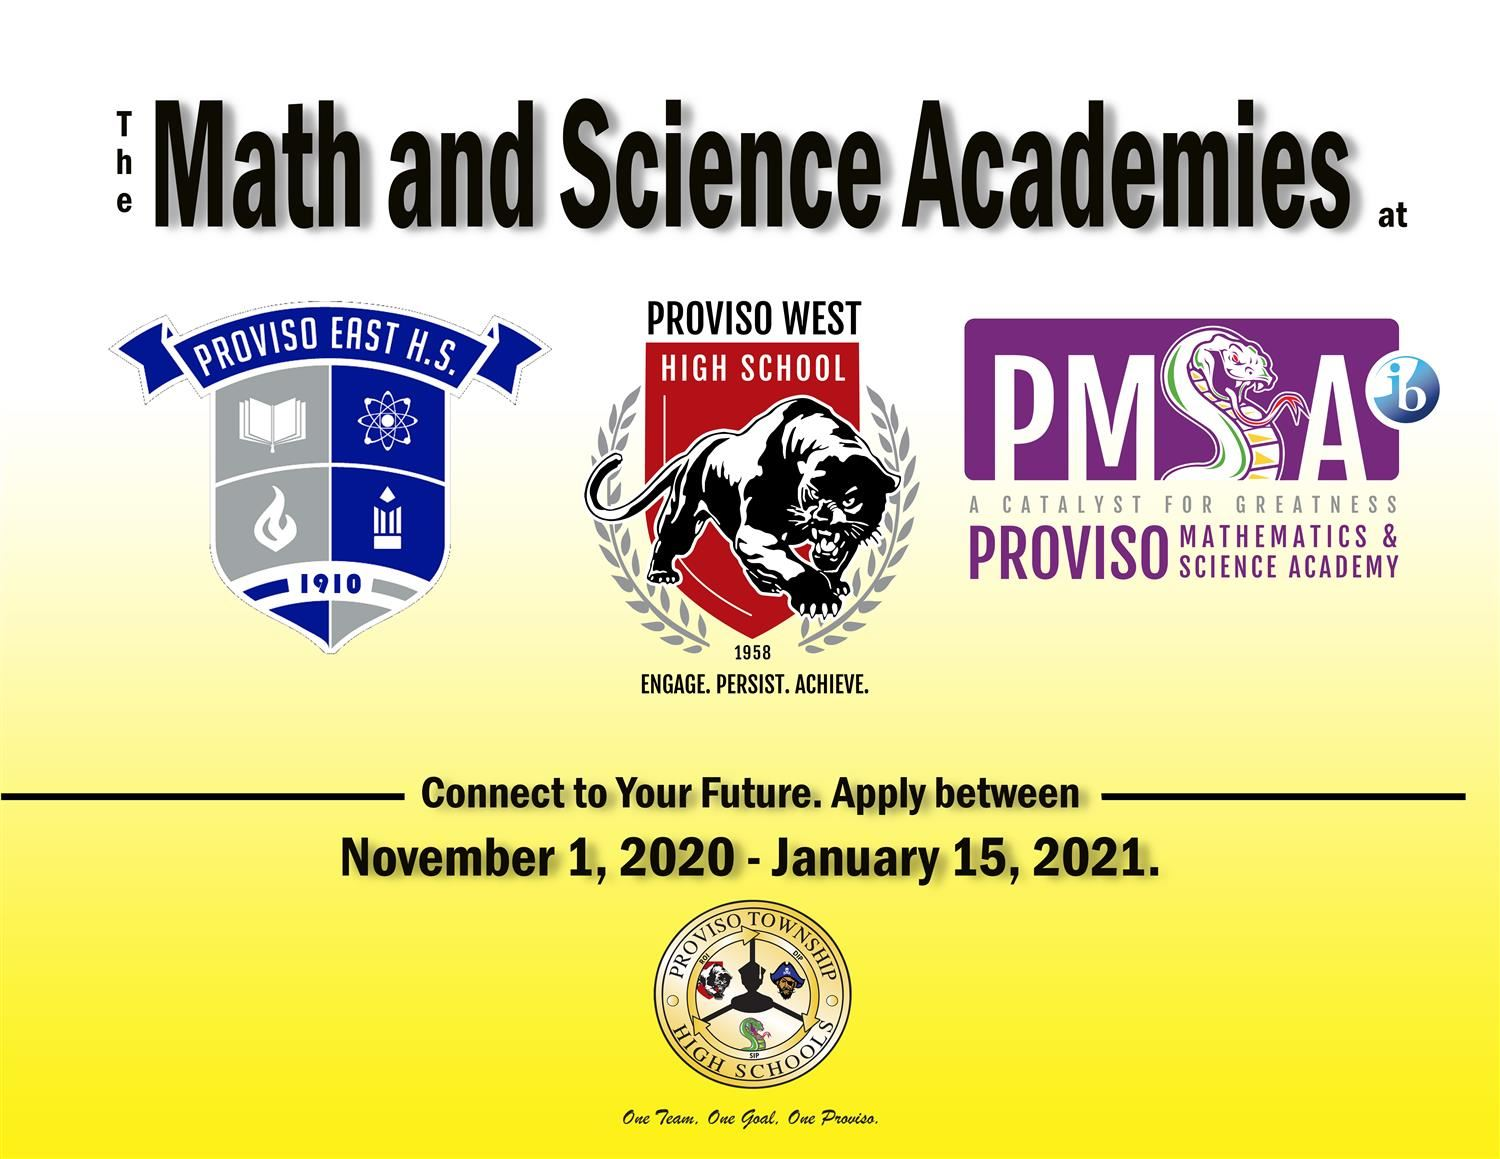 Apply here for the Math and Science Academies